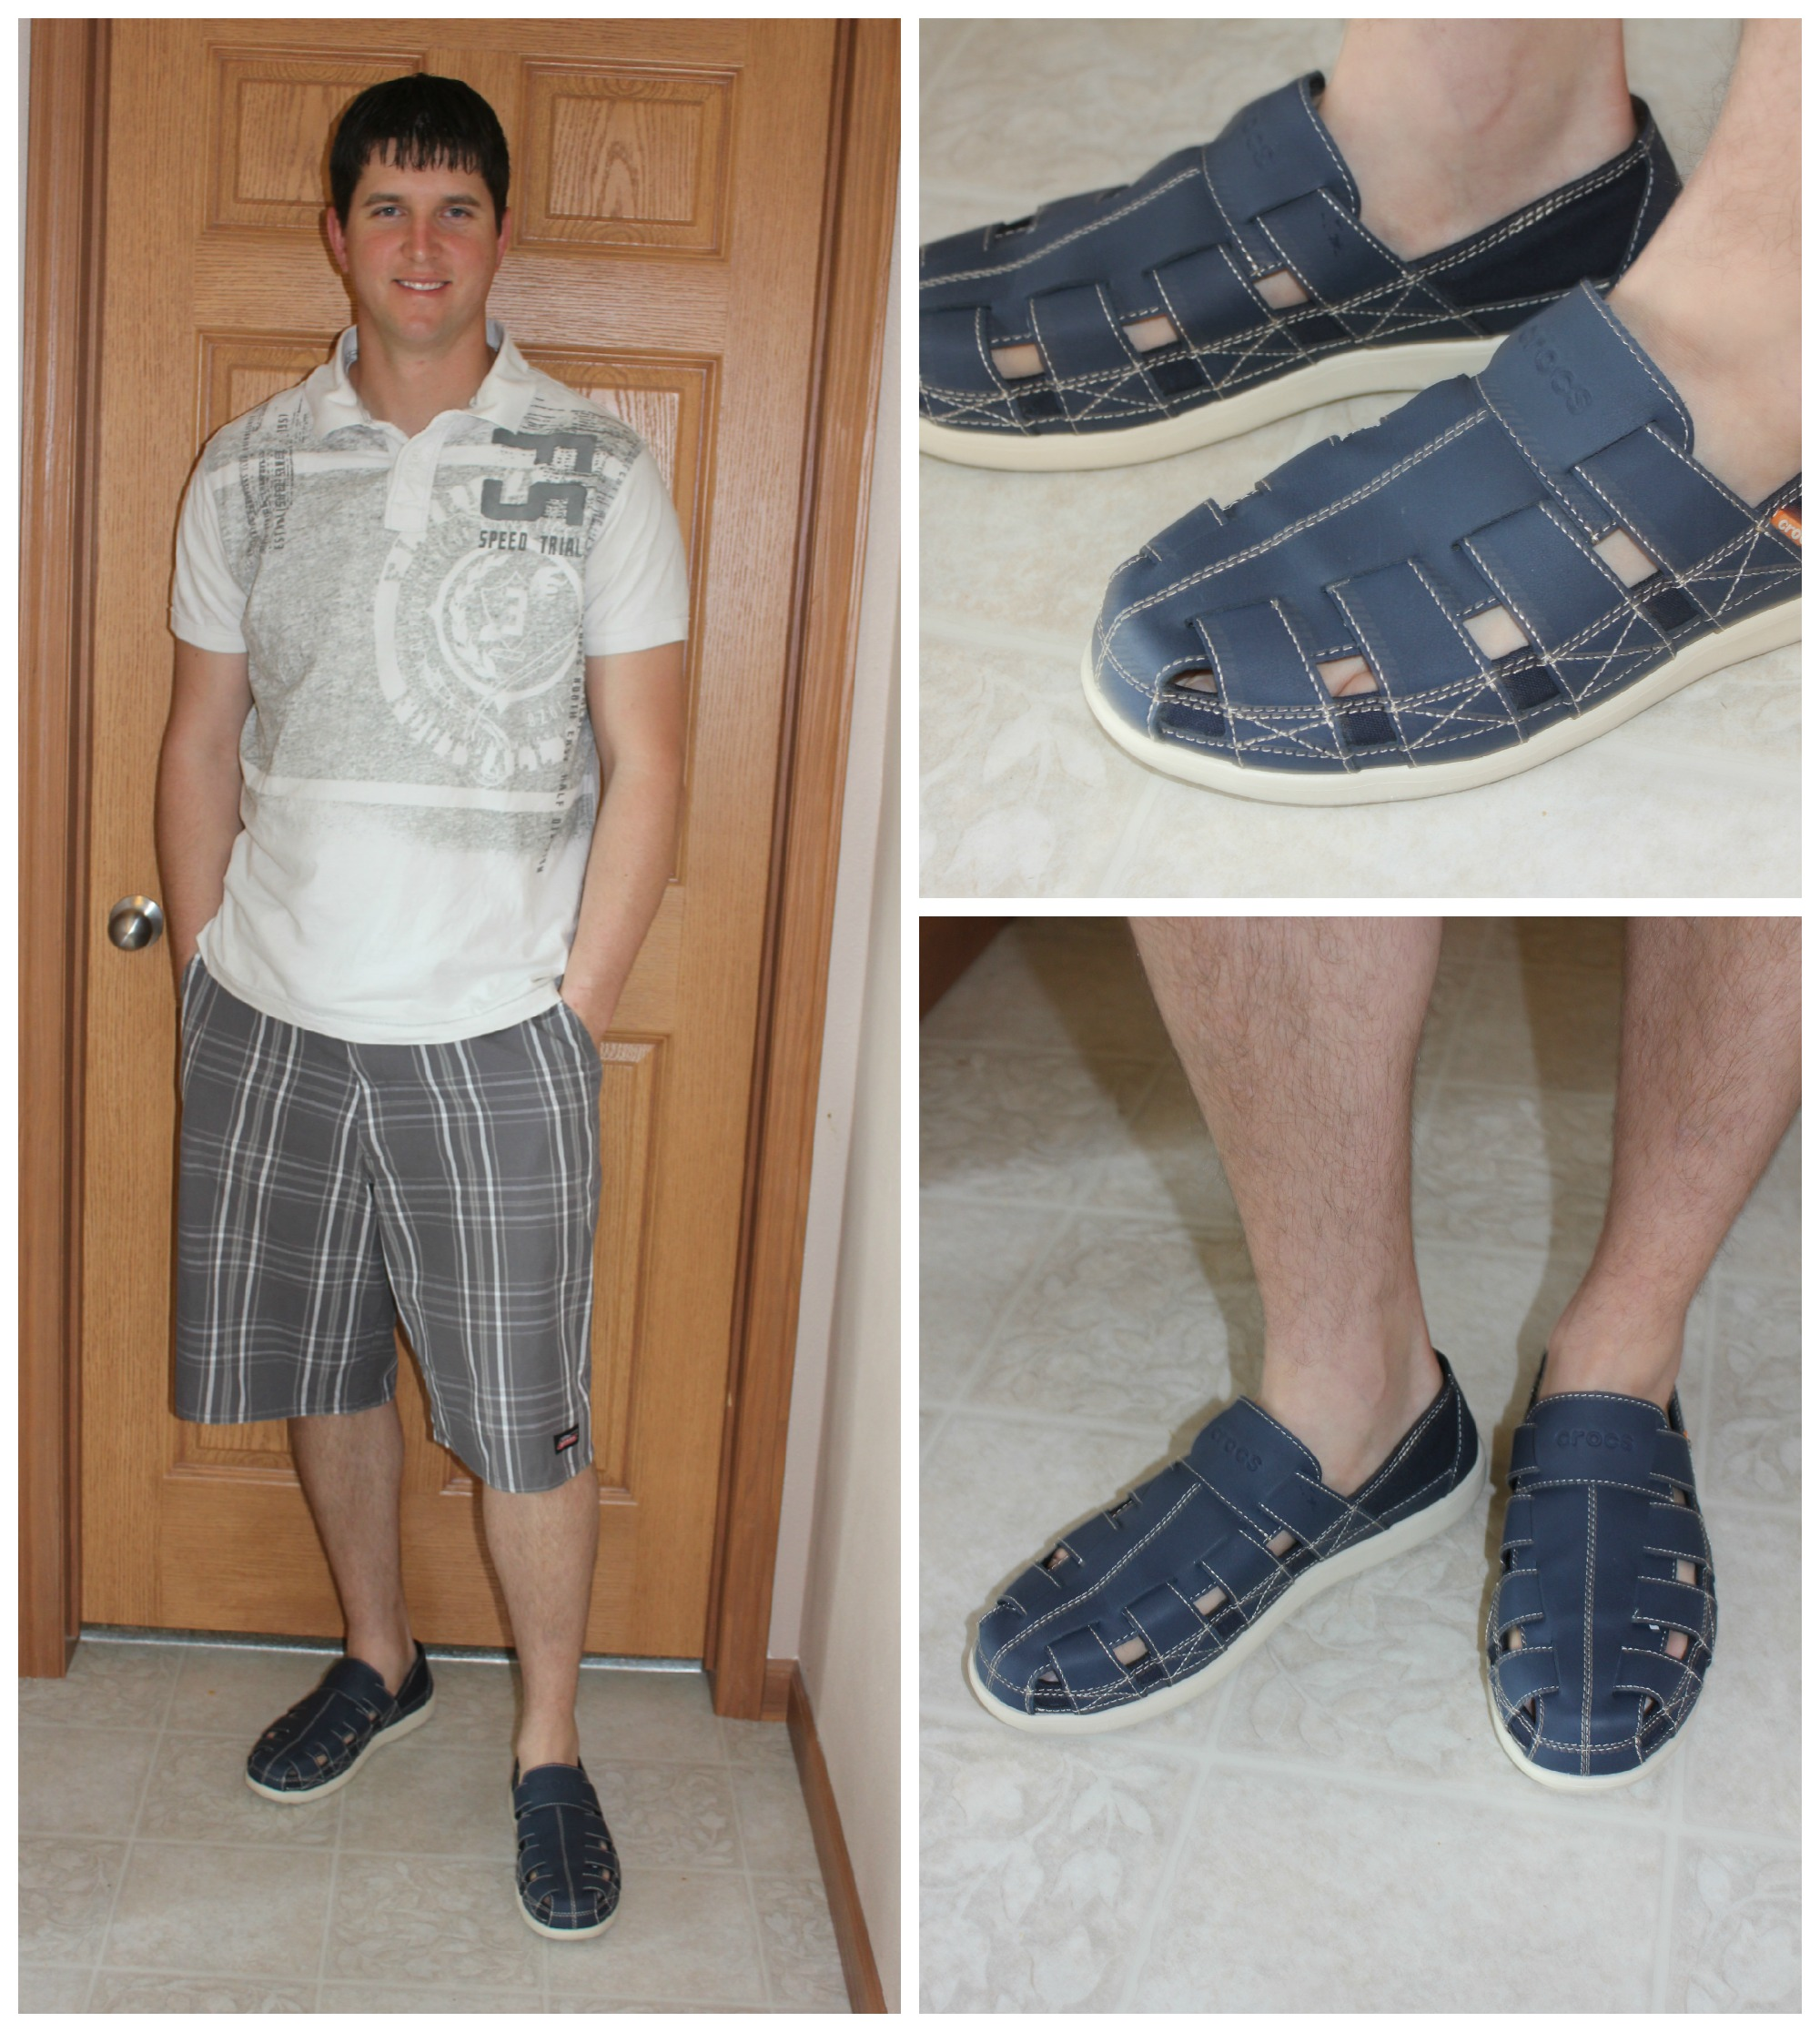 Crocs Mens Shoes